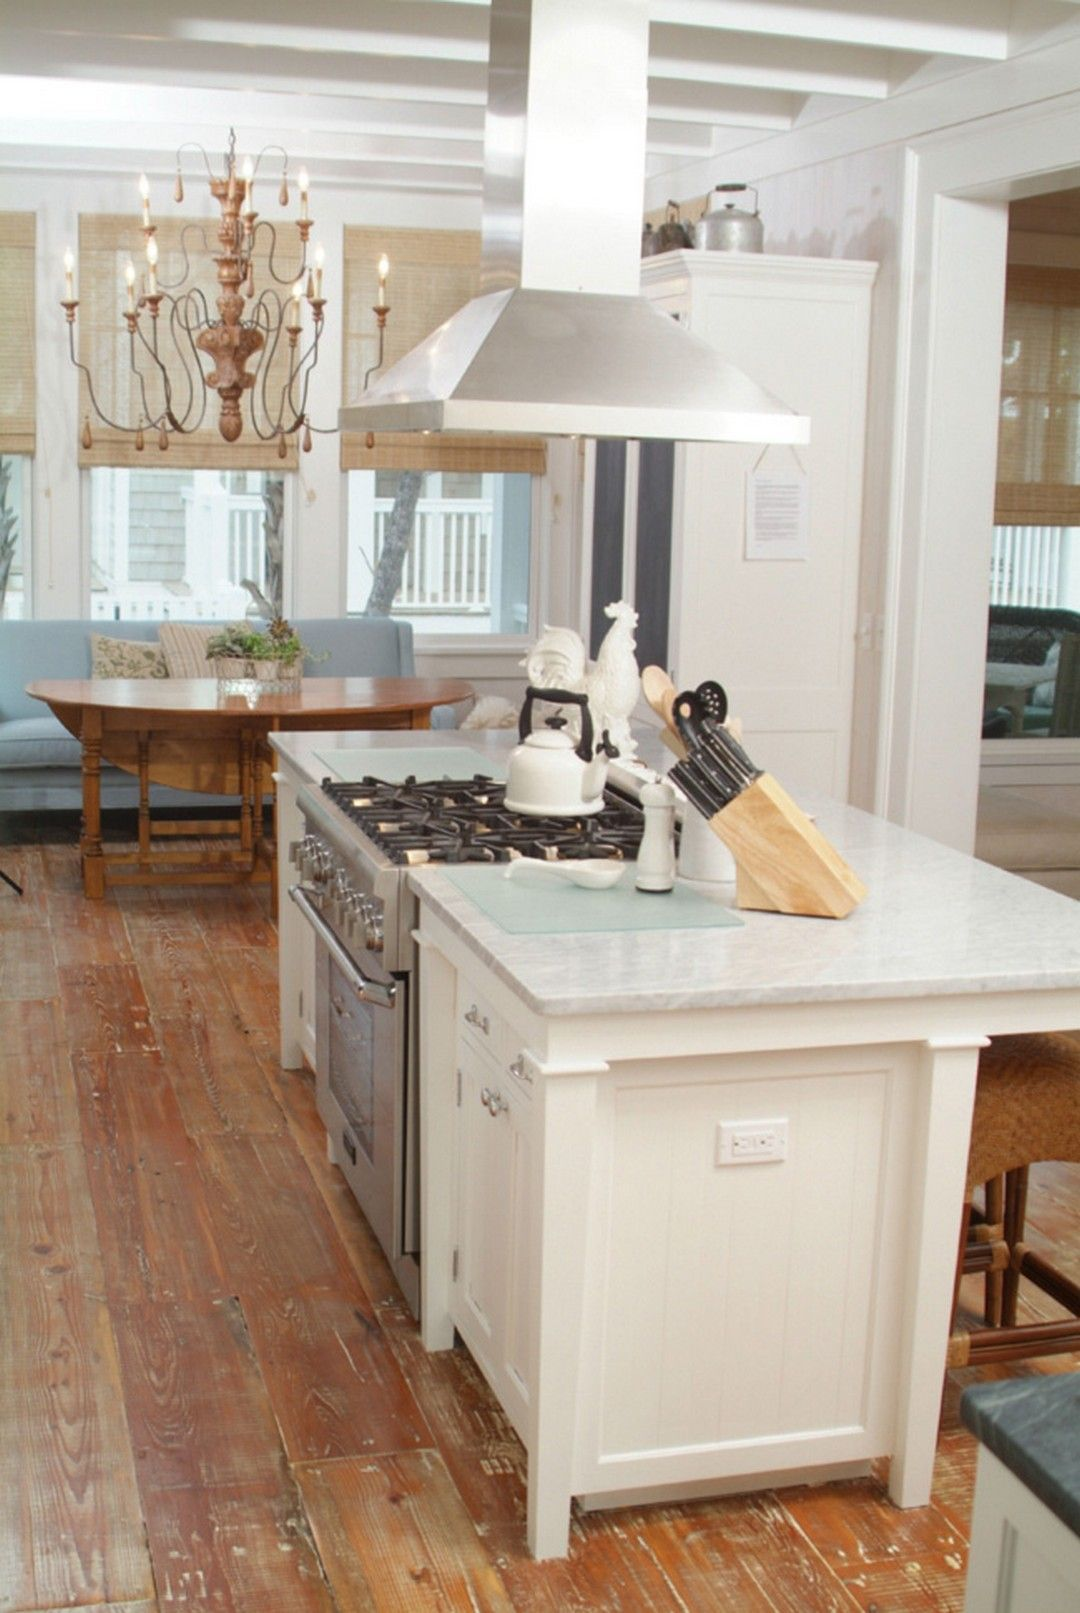 Rustic Countertops: Everything You Need to Know | Kitchen ...